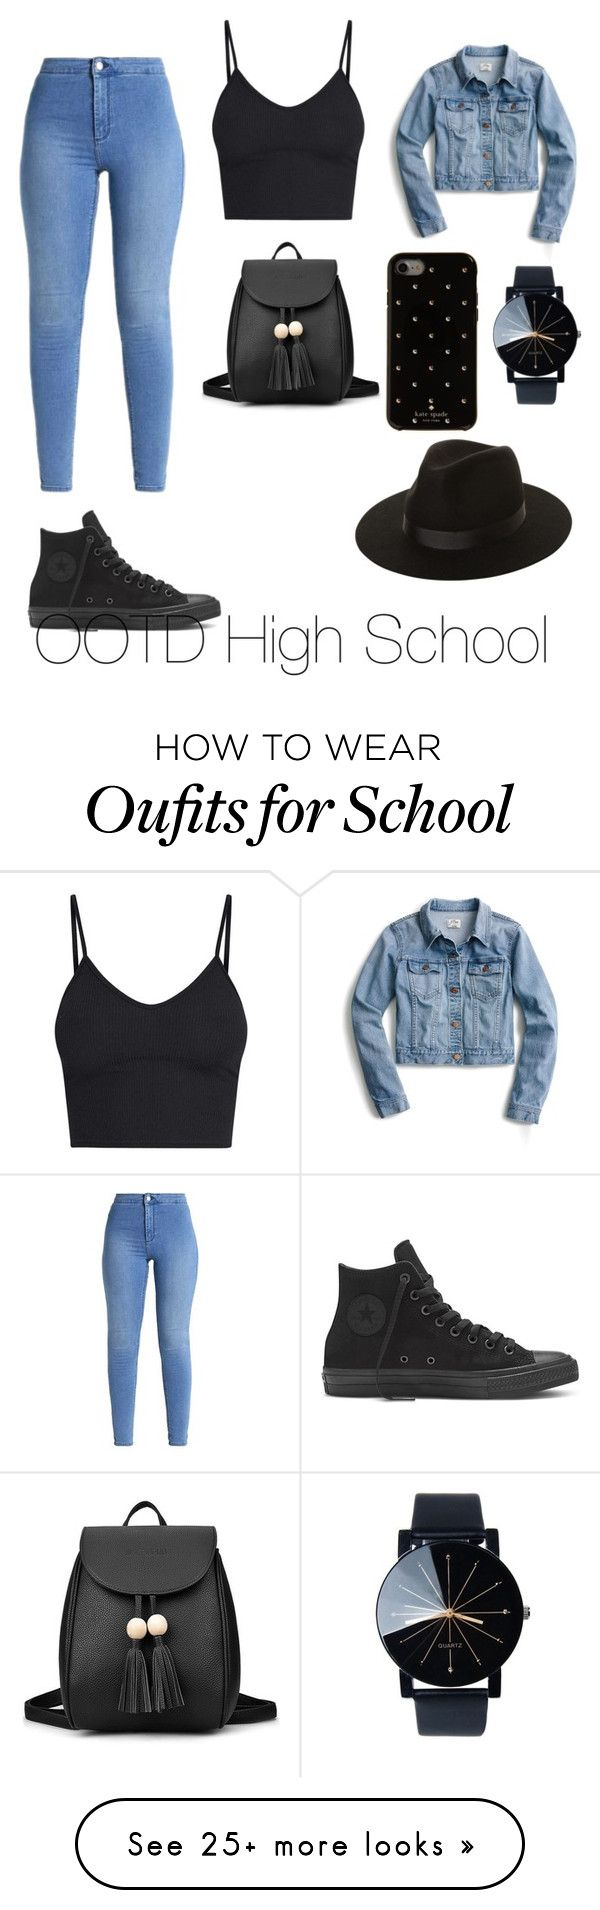 """OOTD High School"" by roxana-balan on Polyvore featuring J.Crew, Kate Spade and Lack of Color"